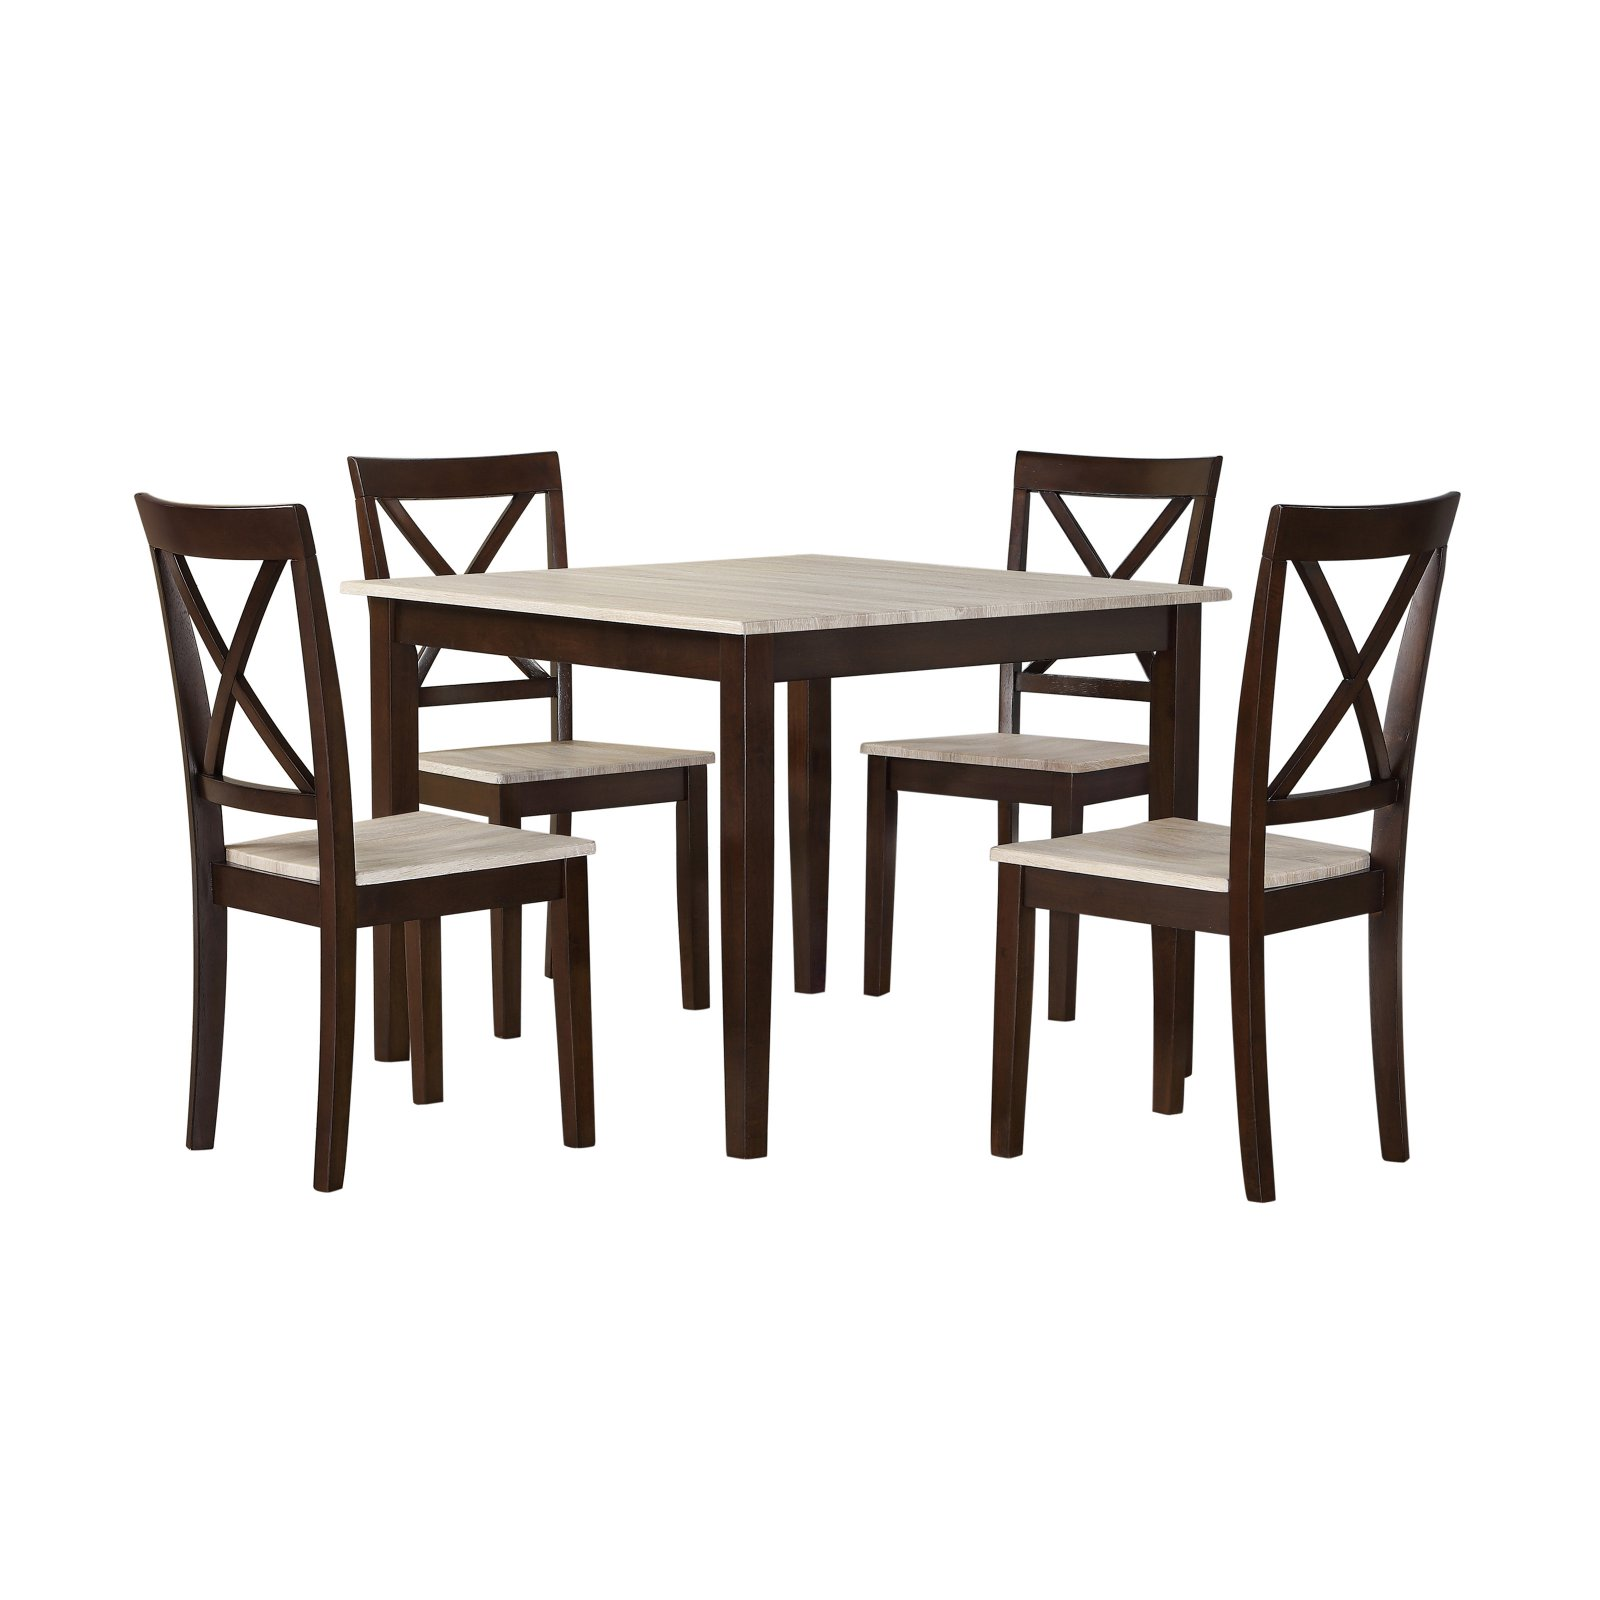 Dorel Living Sunnybrook Rustic 5 Piece Dining Set